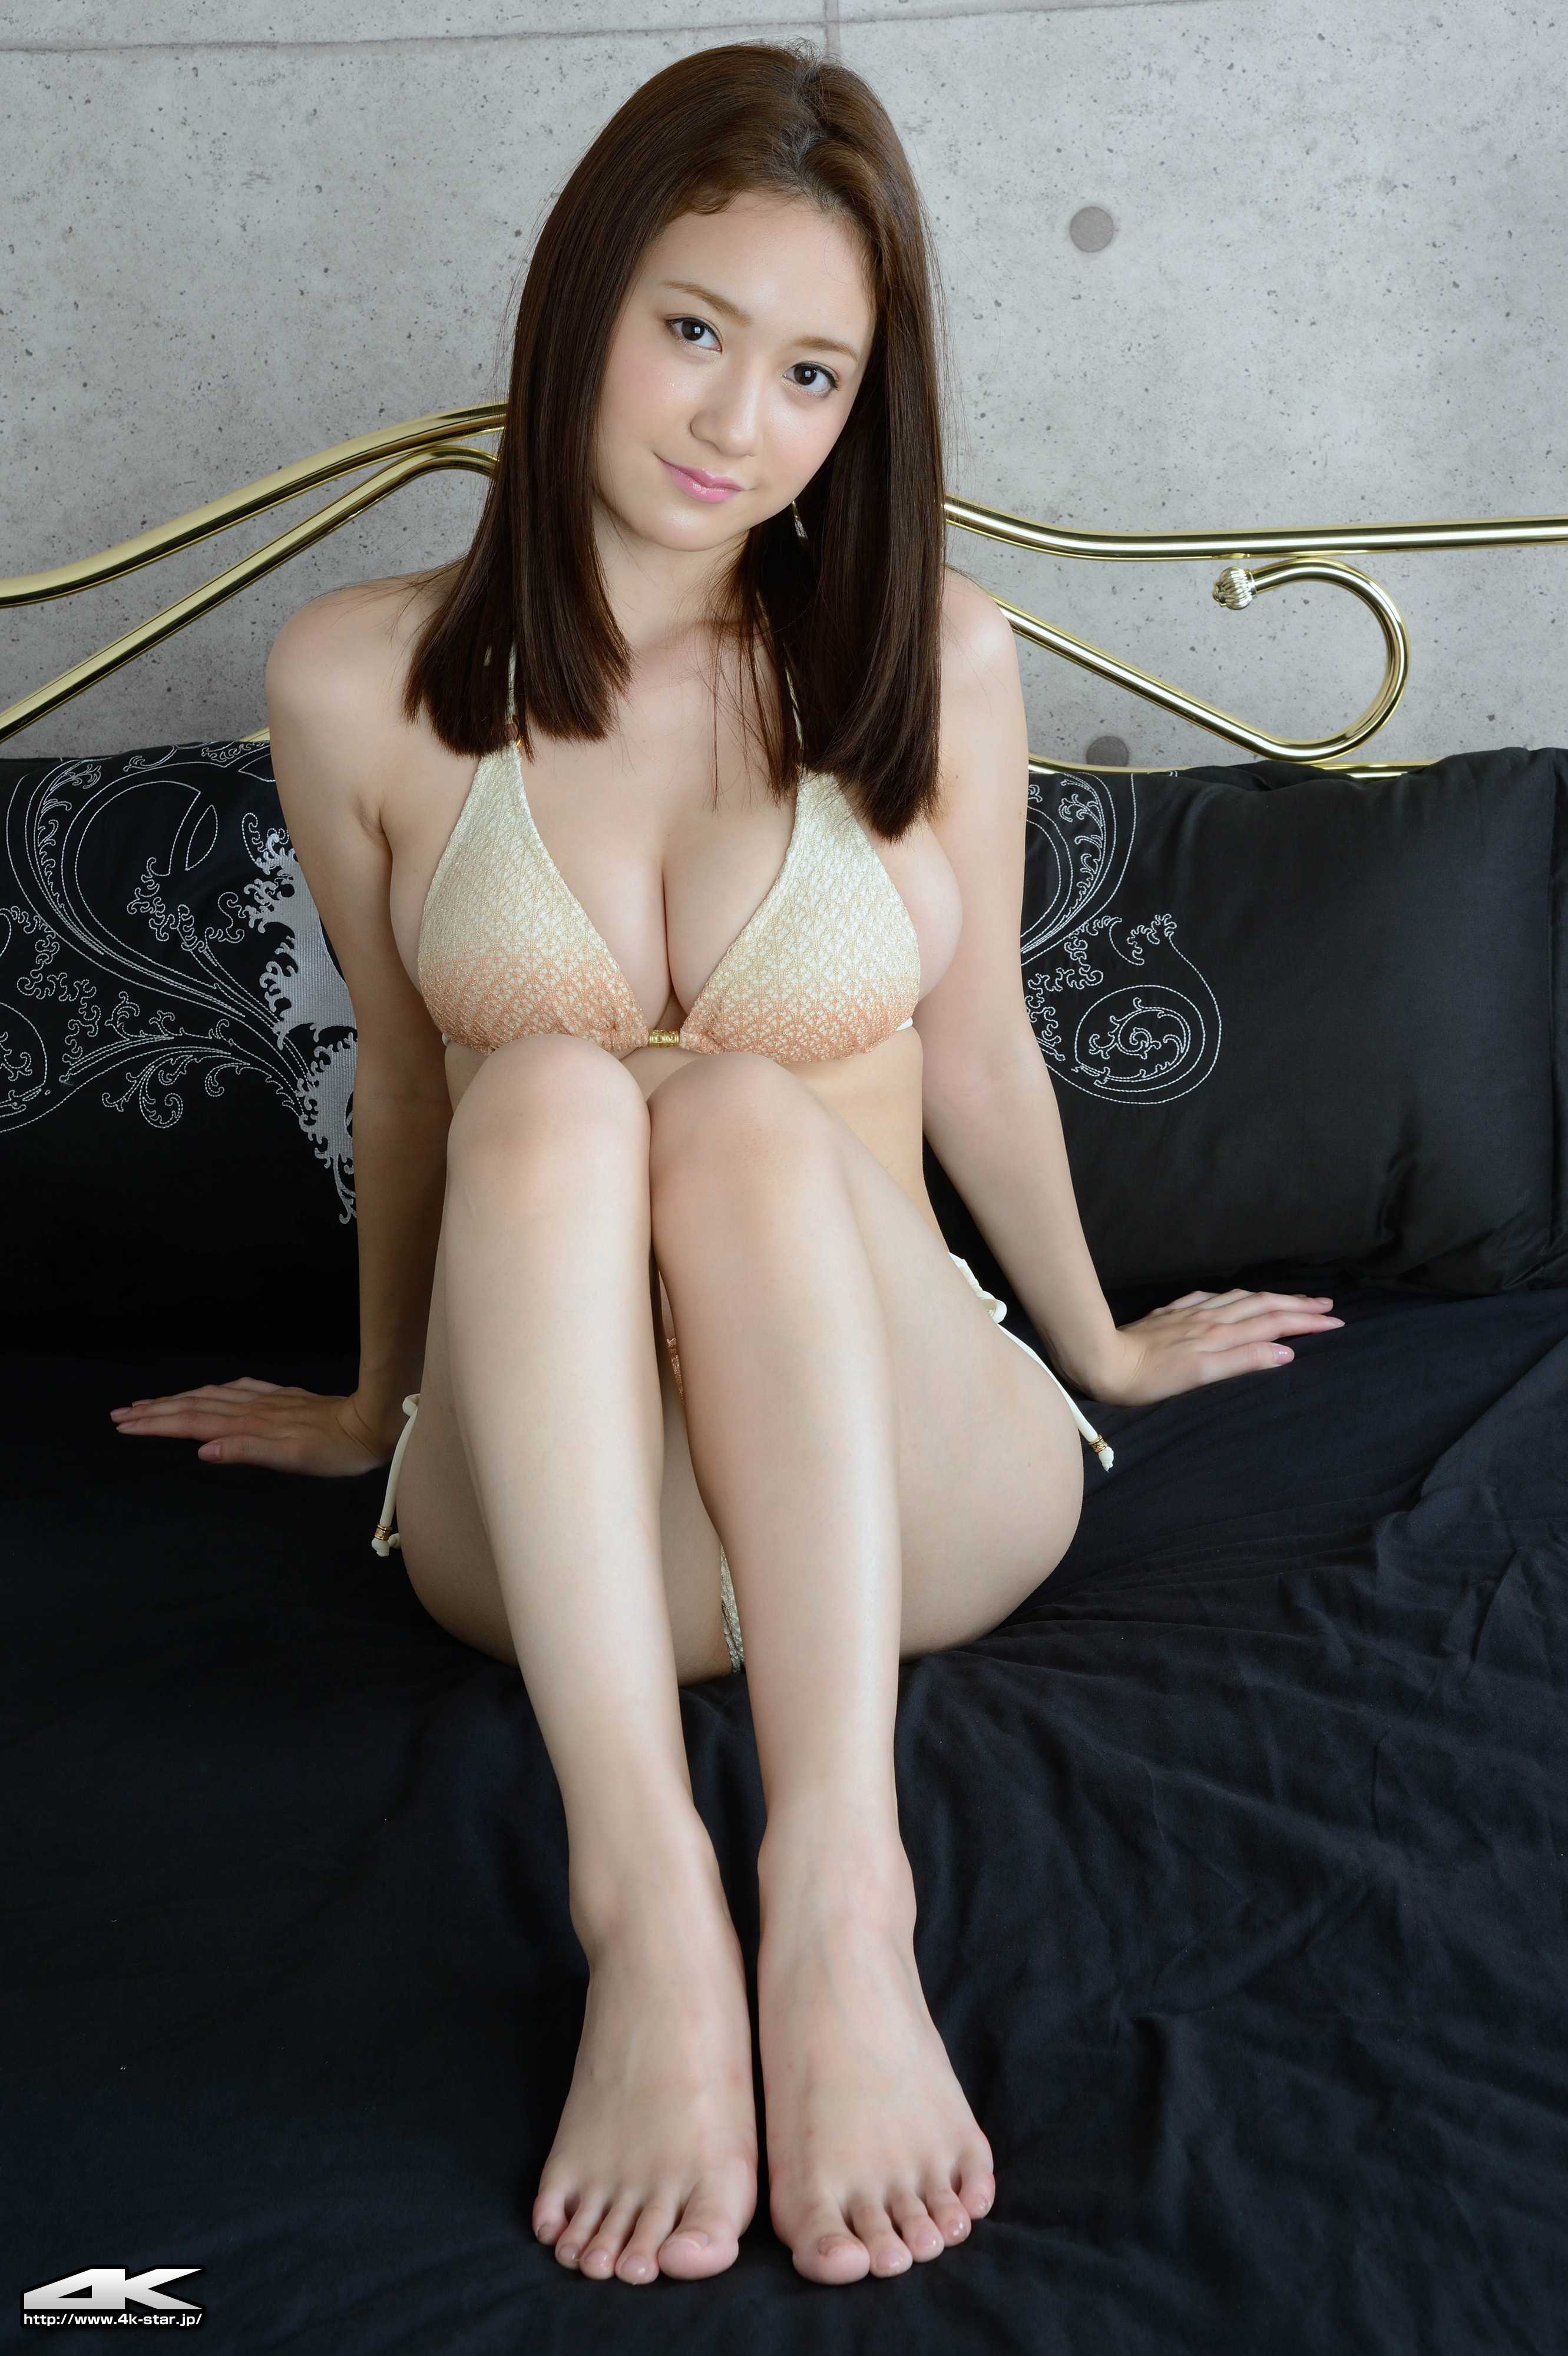 lapaz asian girl personals For those of asian descent looking for a date, love, or just connecting online, there's sure to be a site here for you while most don't offer as many features as the most widely-known top dating sites, all seven sites focus entirely on people in asia or those who want to date someone asian.